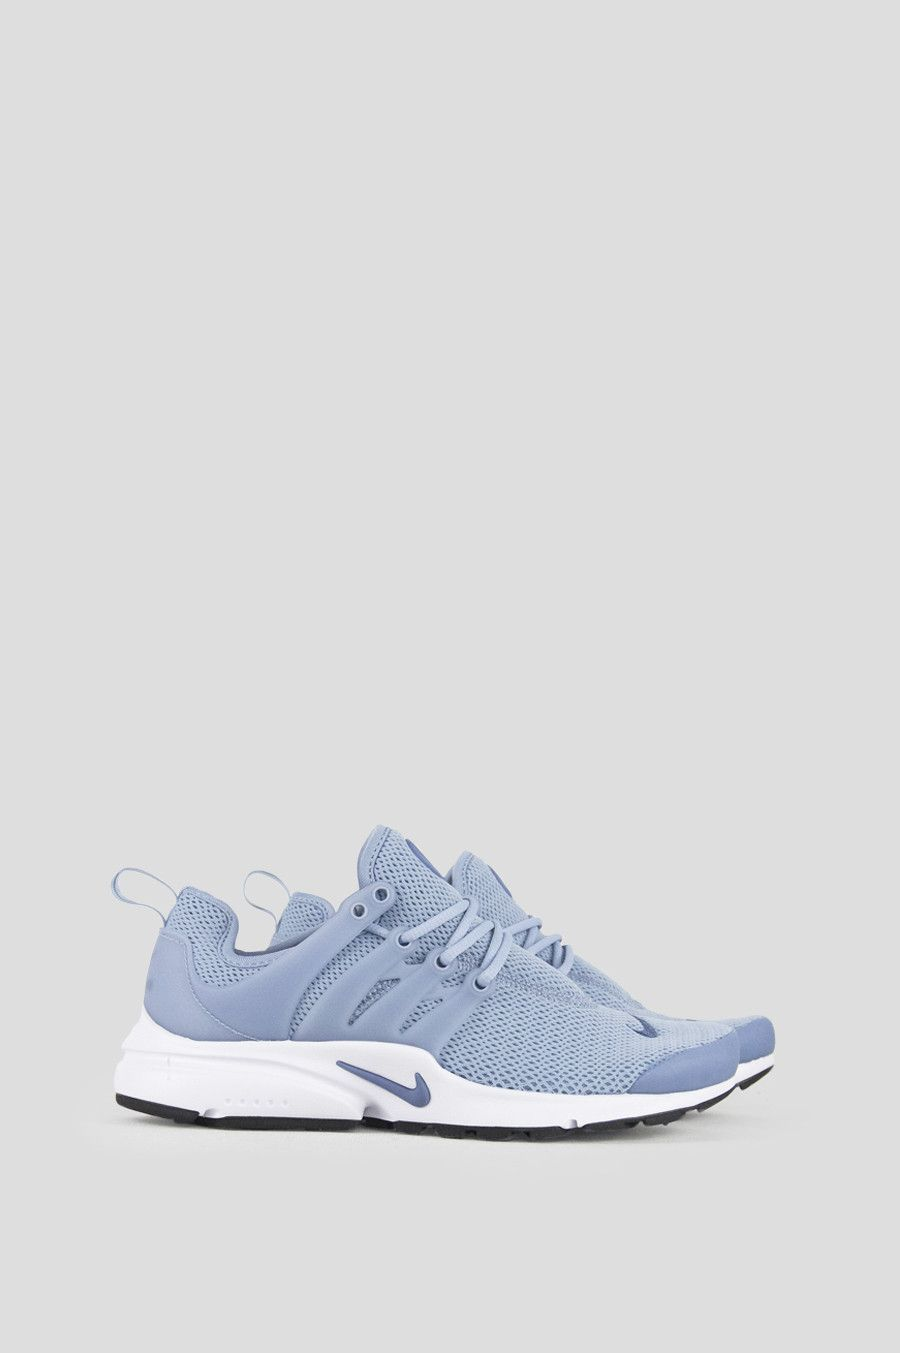 e654ab2b474 Product Code  878068-400 - Color  Blue Grey   Ocean Fog - Black - Ma. The  Nike Air Presto Womens Shoe ...